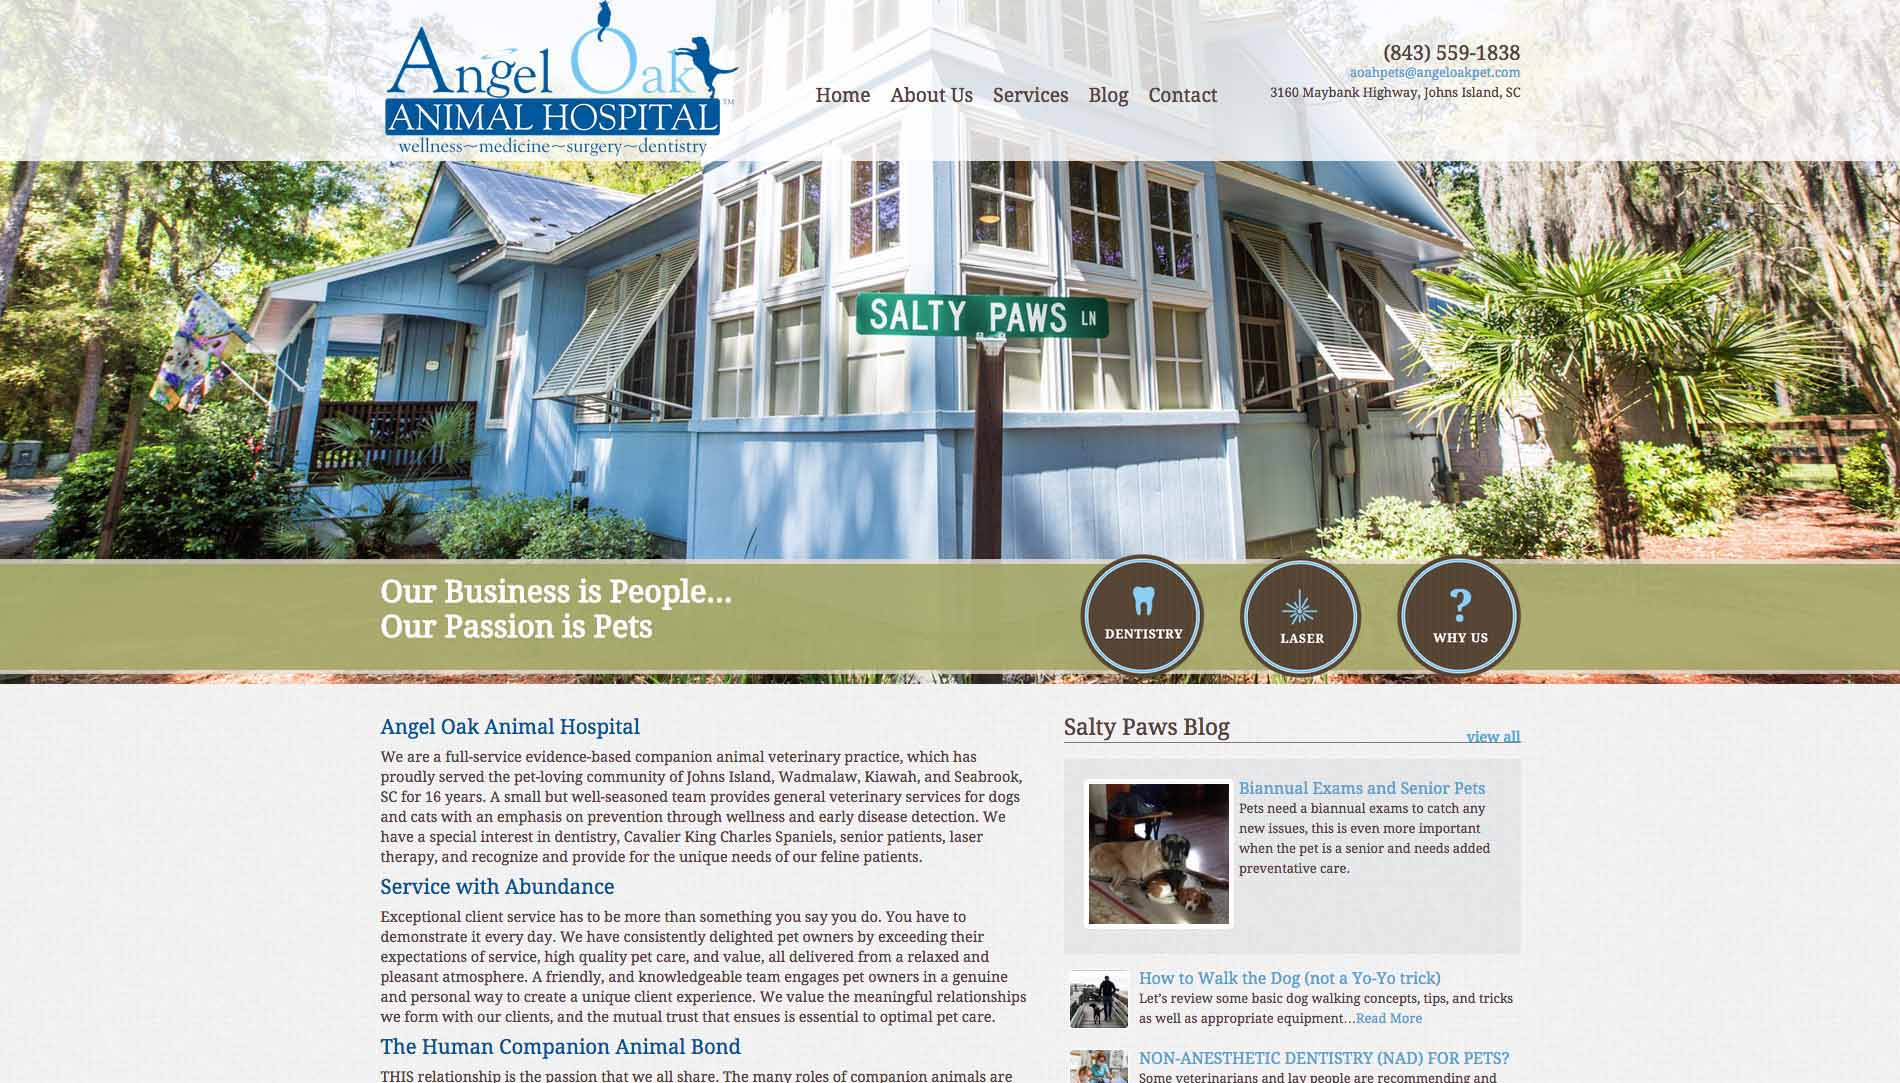 Angel Oak Animal Hospital